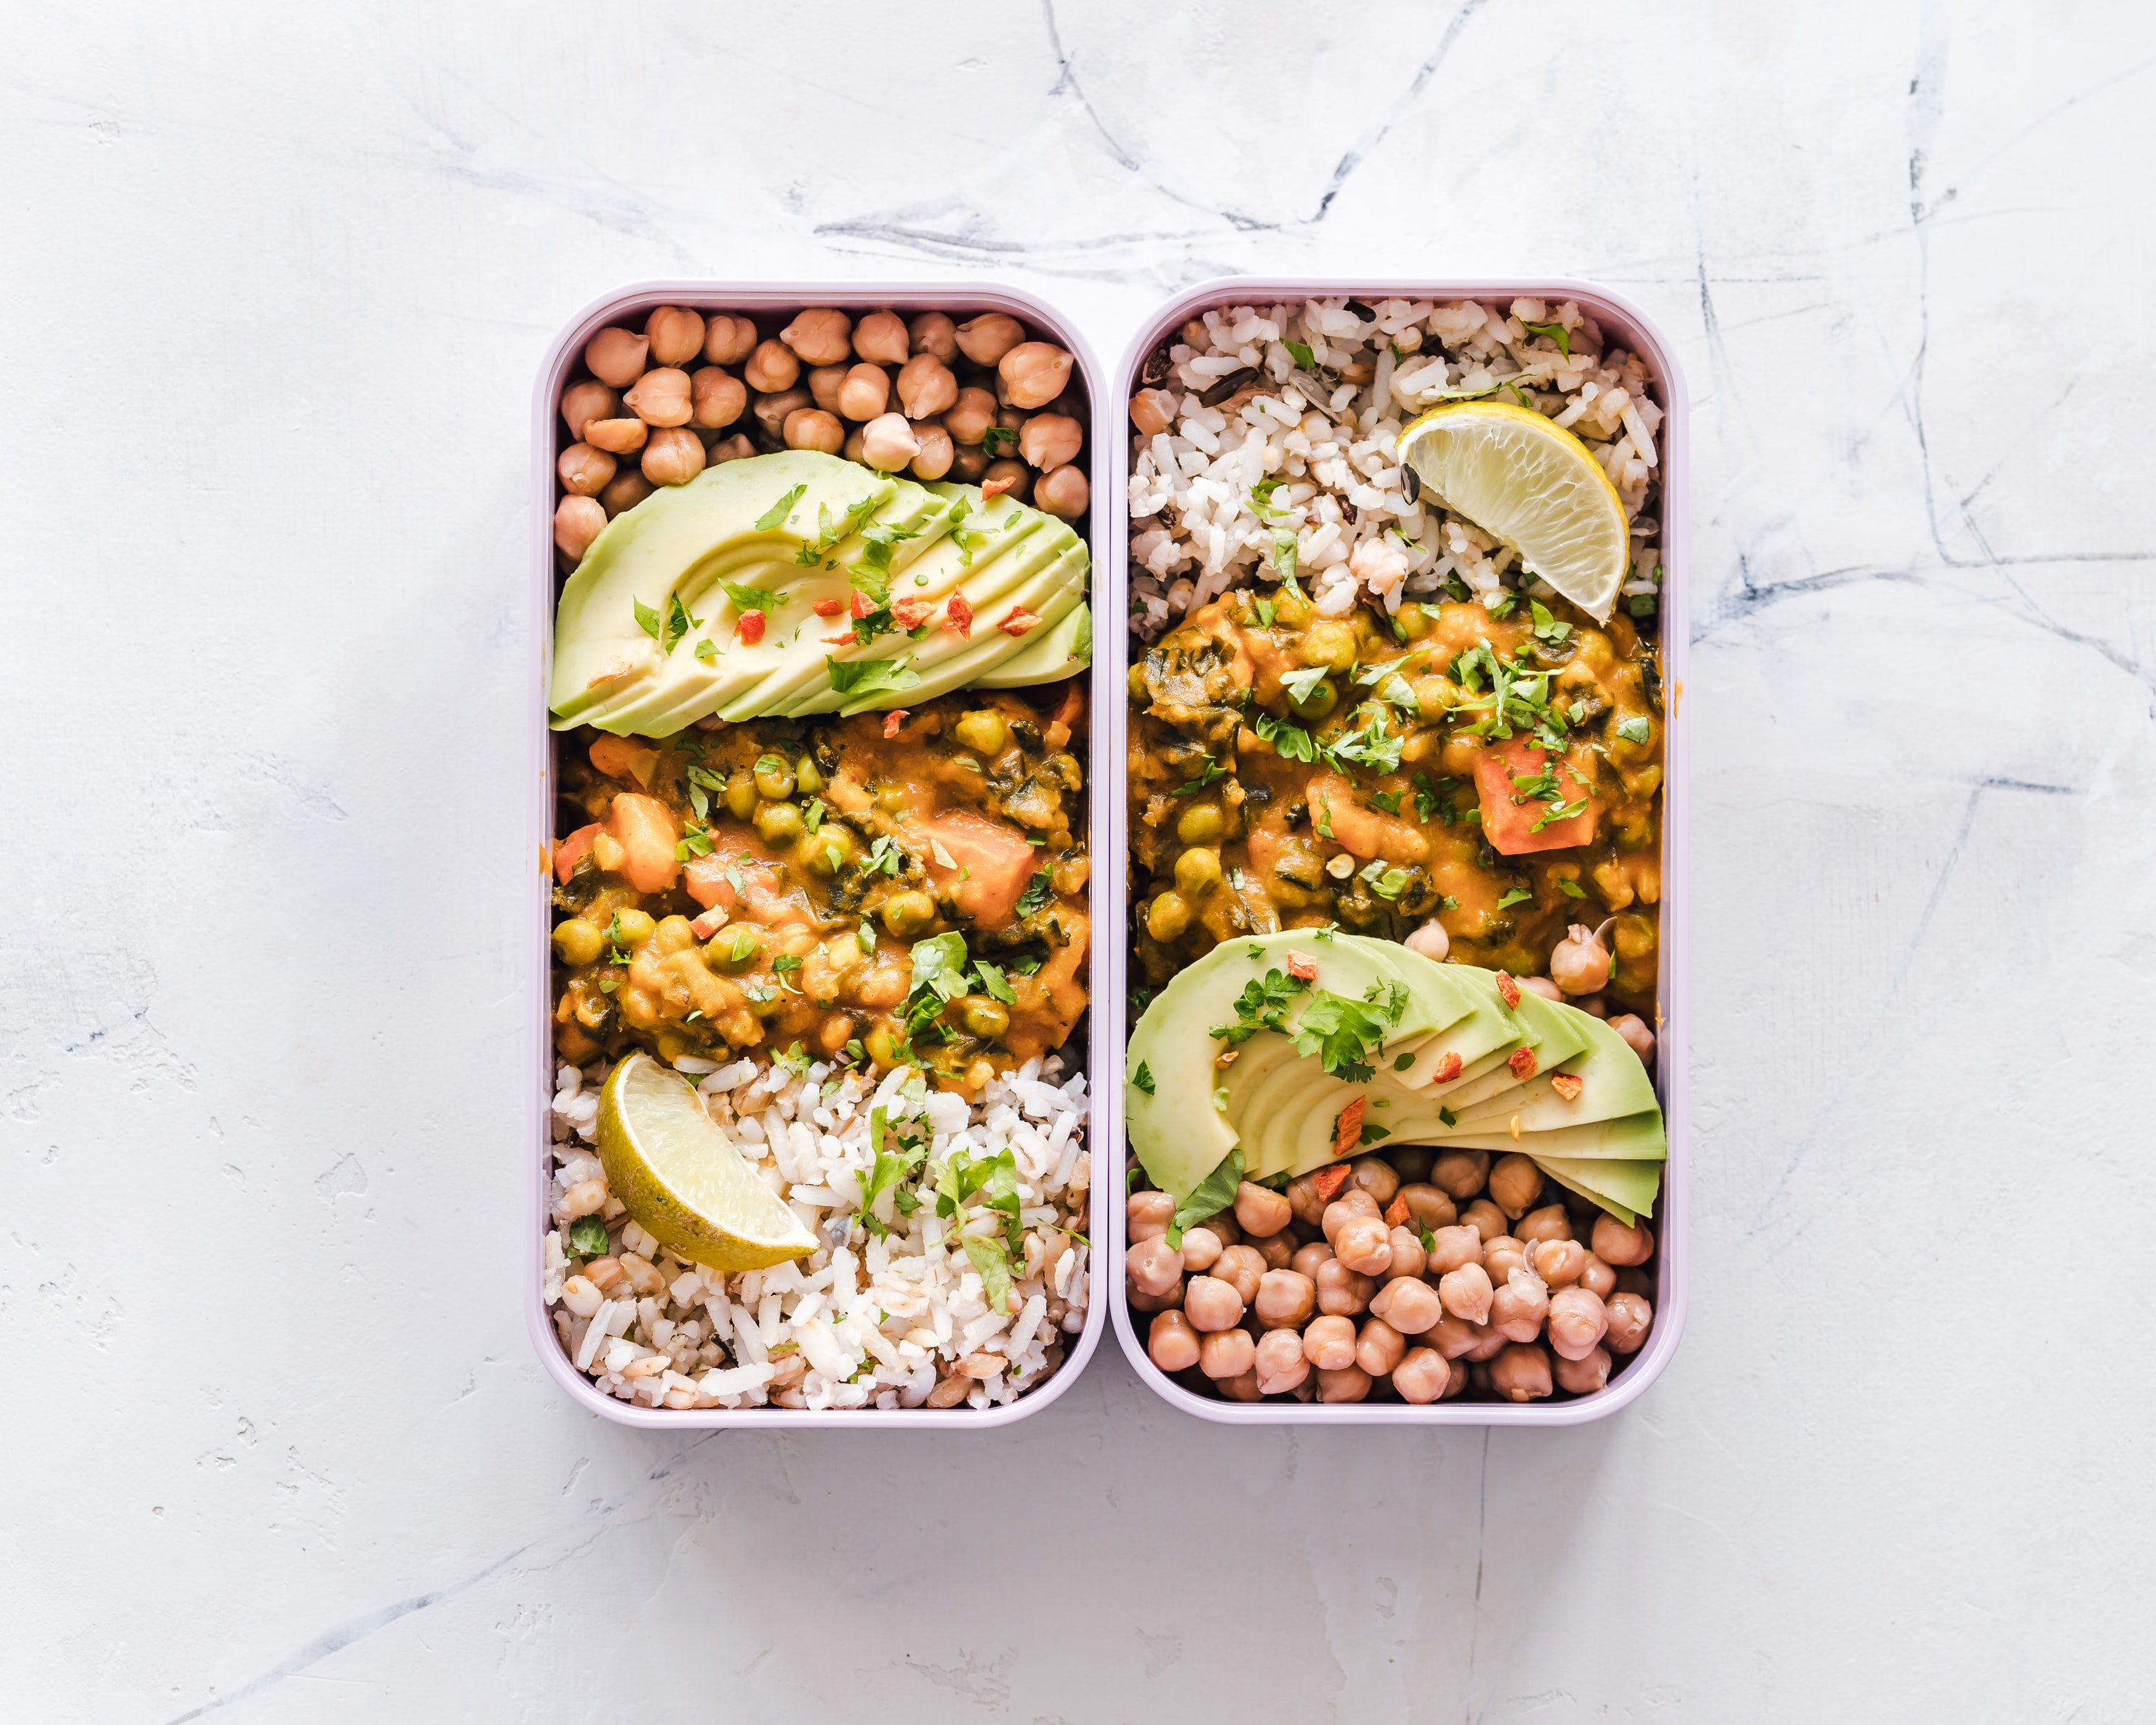 Meal Prep Lunch Box mit Kichererbsen, Curry, Reis und Avocado